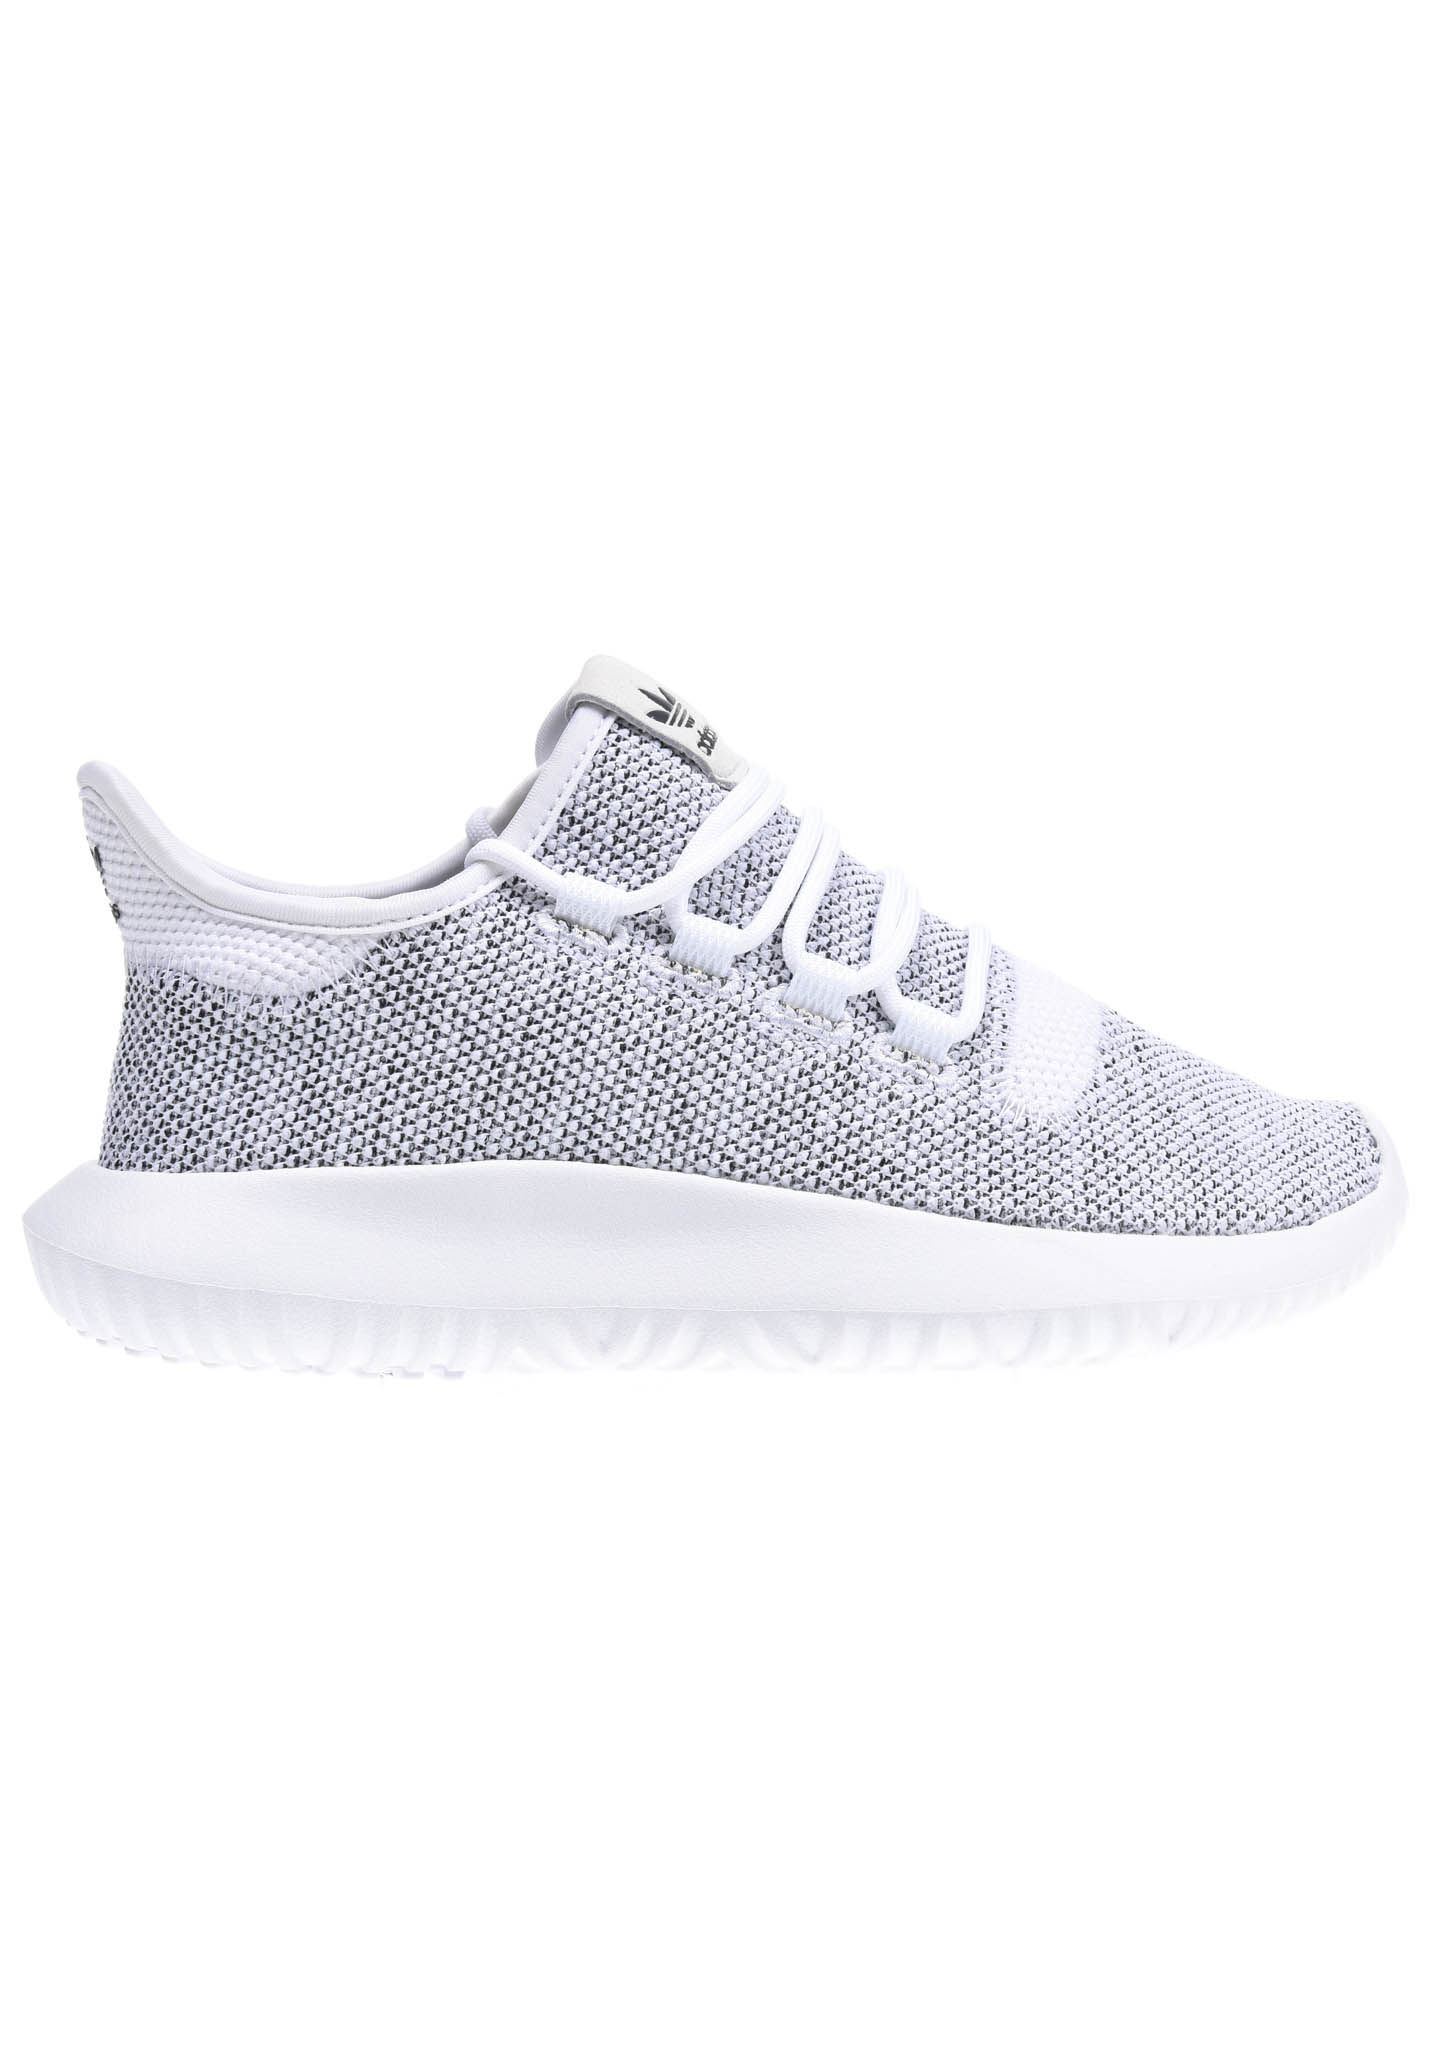 Adidas Tubular Shadow Knit Weiß